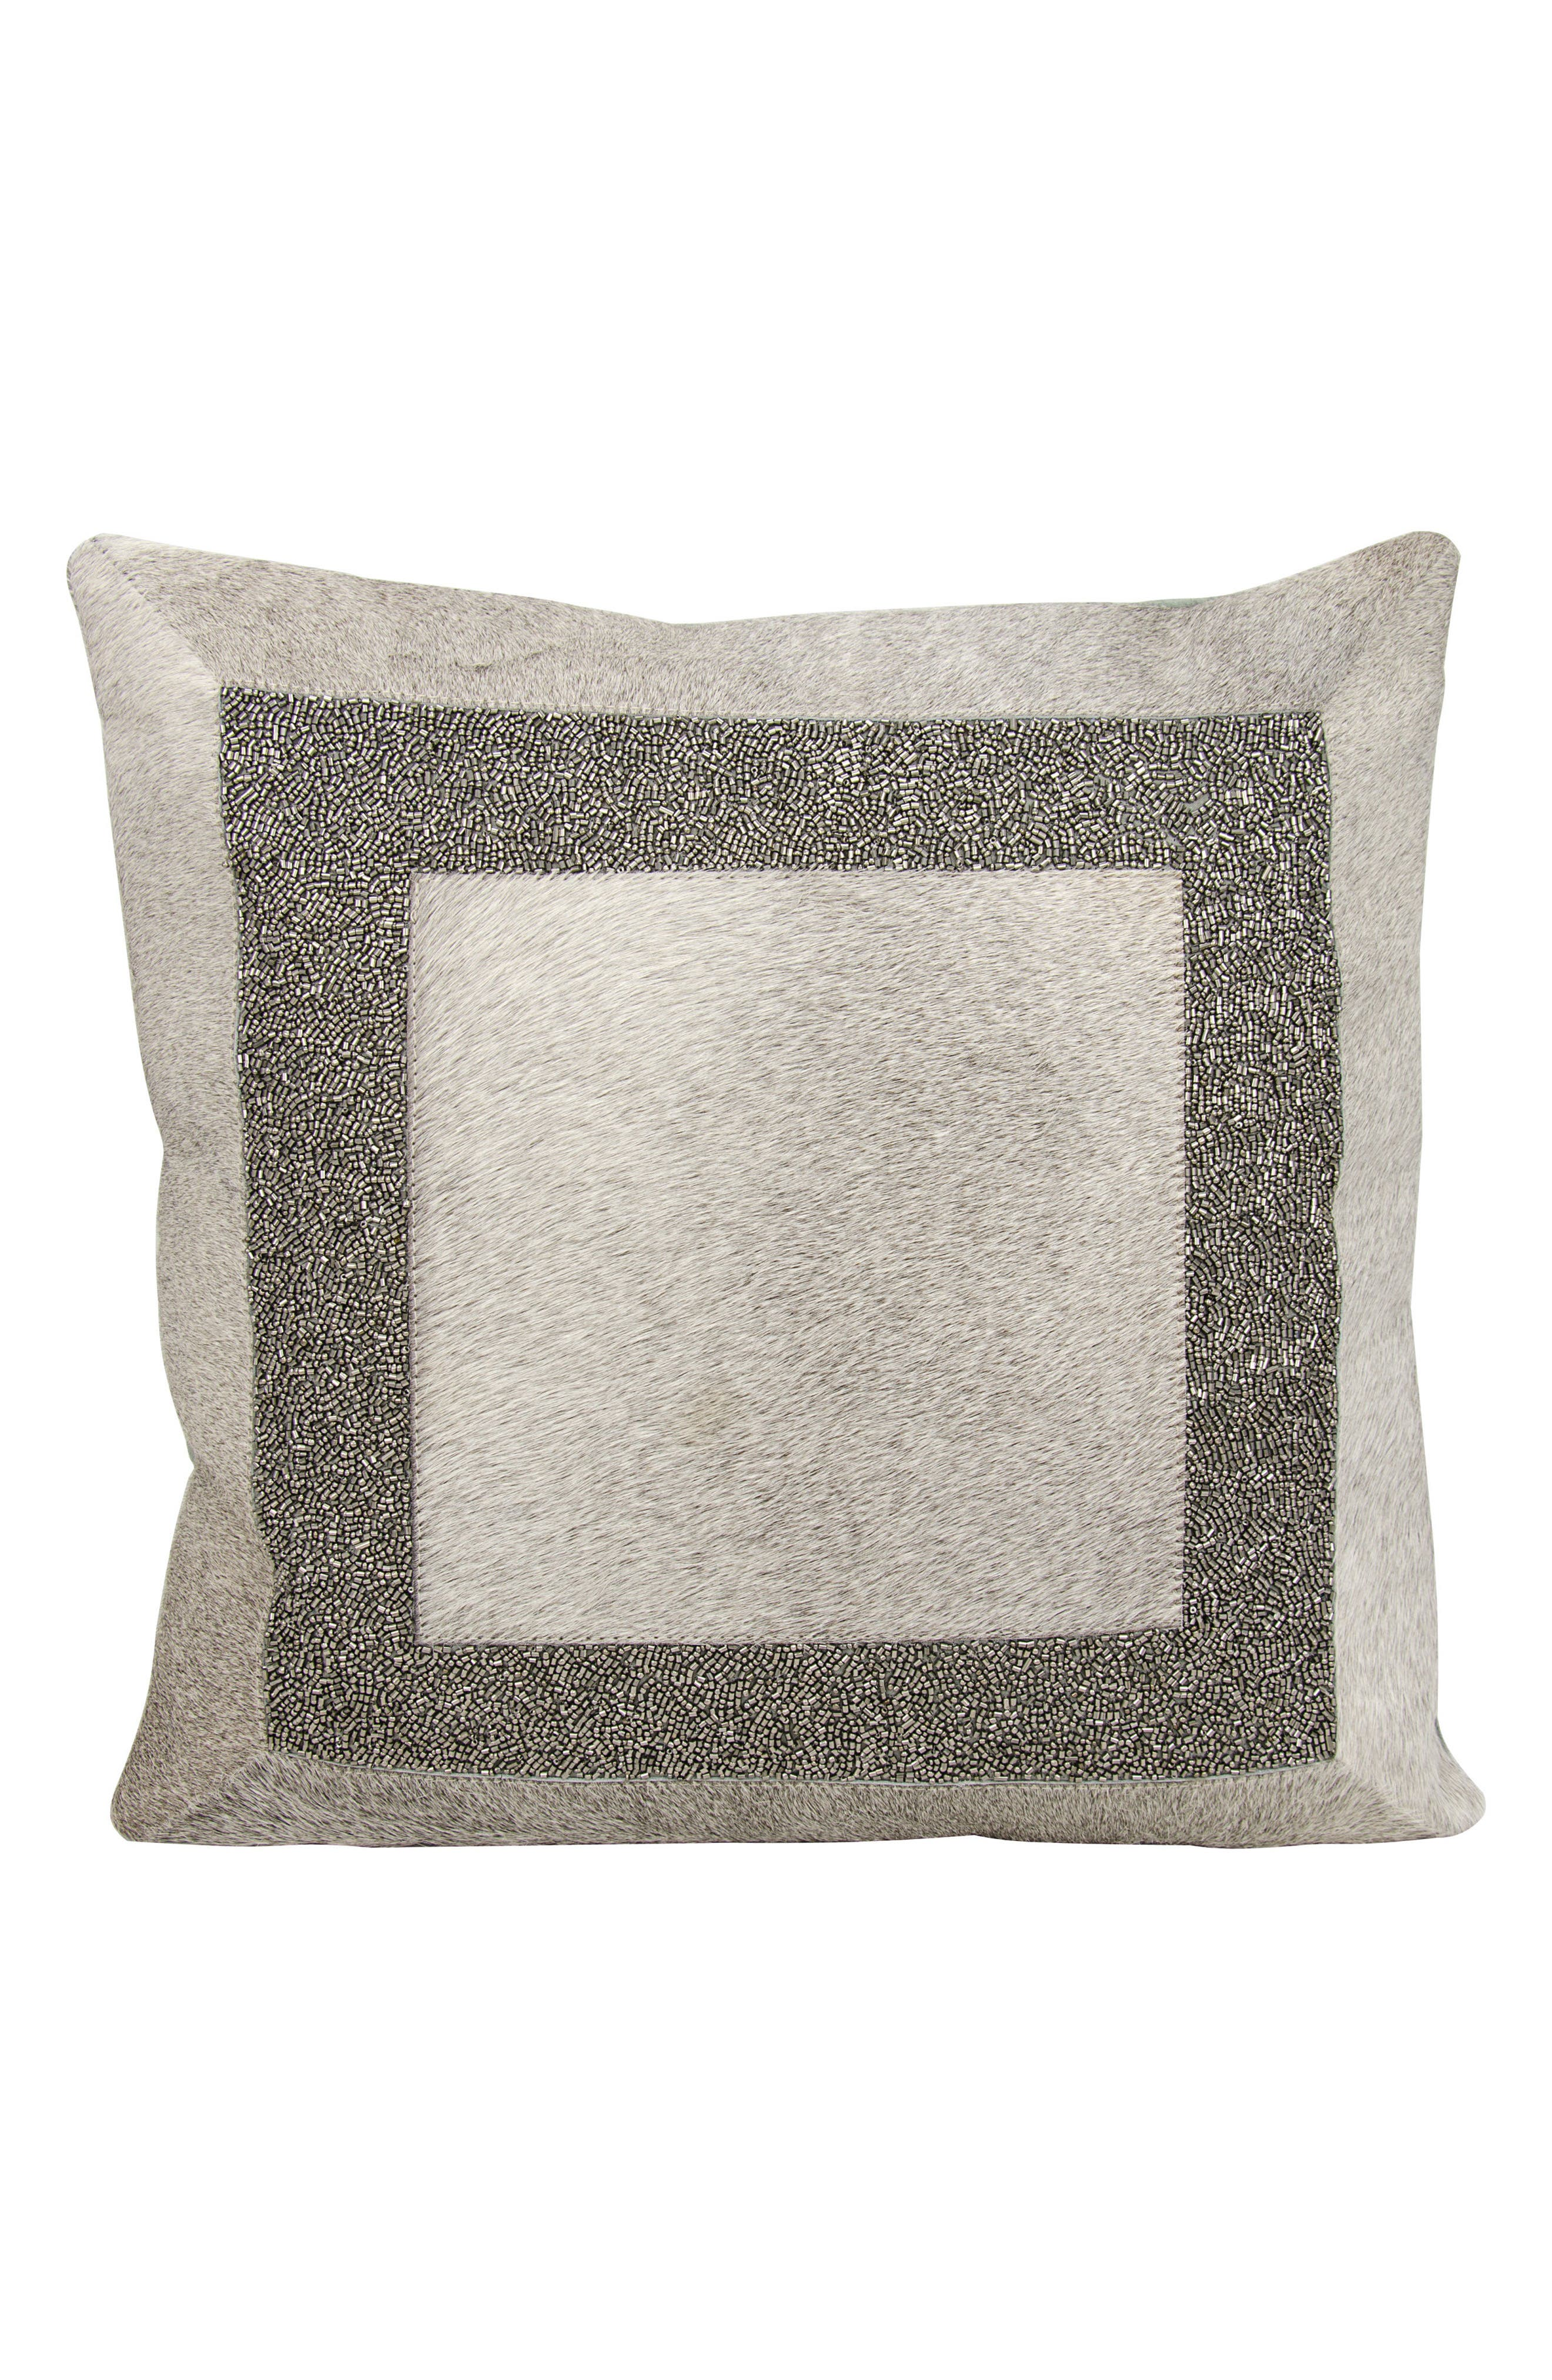 Beaded Calf Hair Accent Pillow,                         Main,                         color, 030